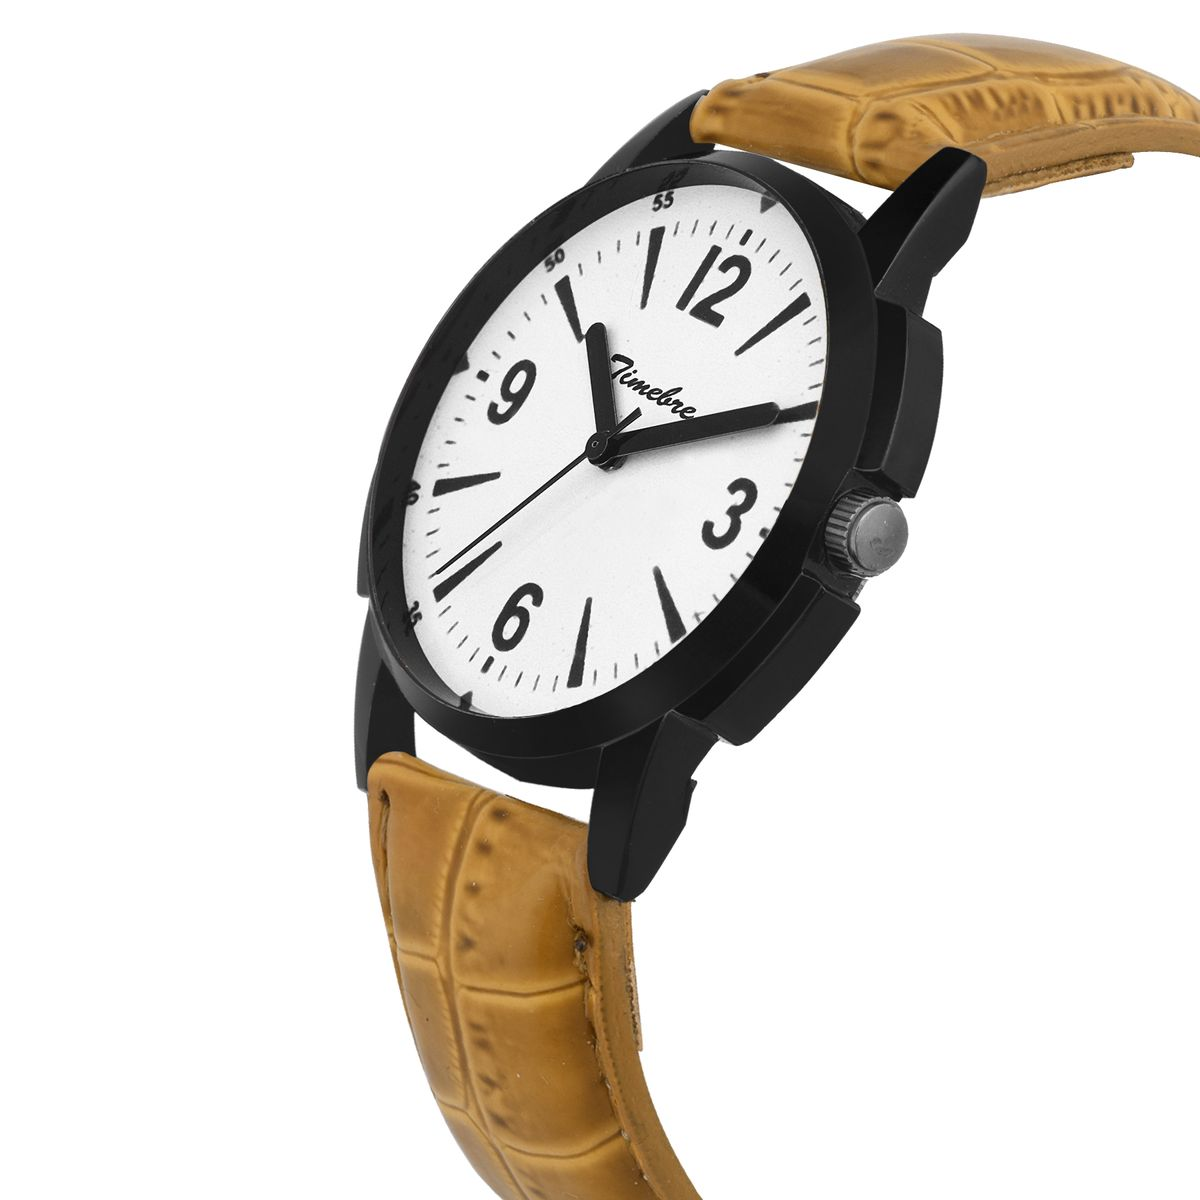 Timebre Men Dusky Crowned Casual Analog Watch 25